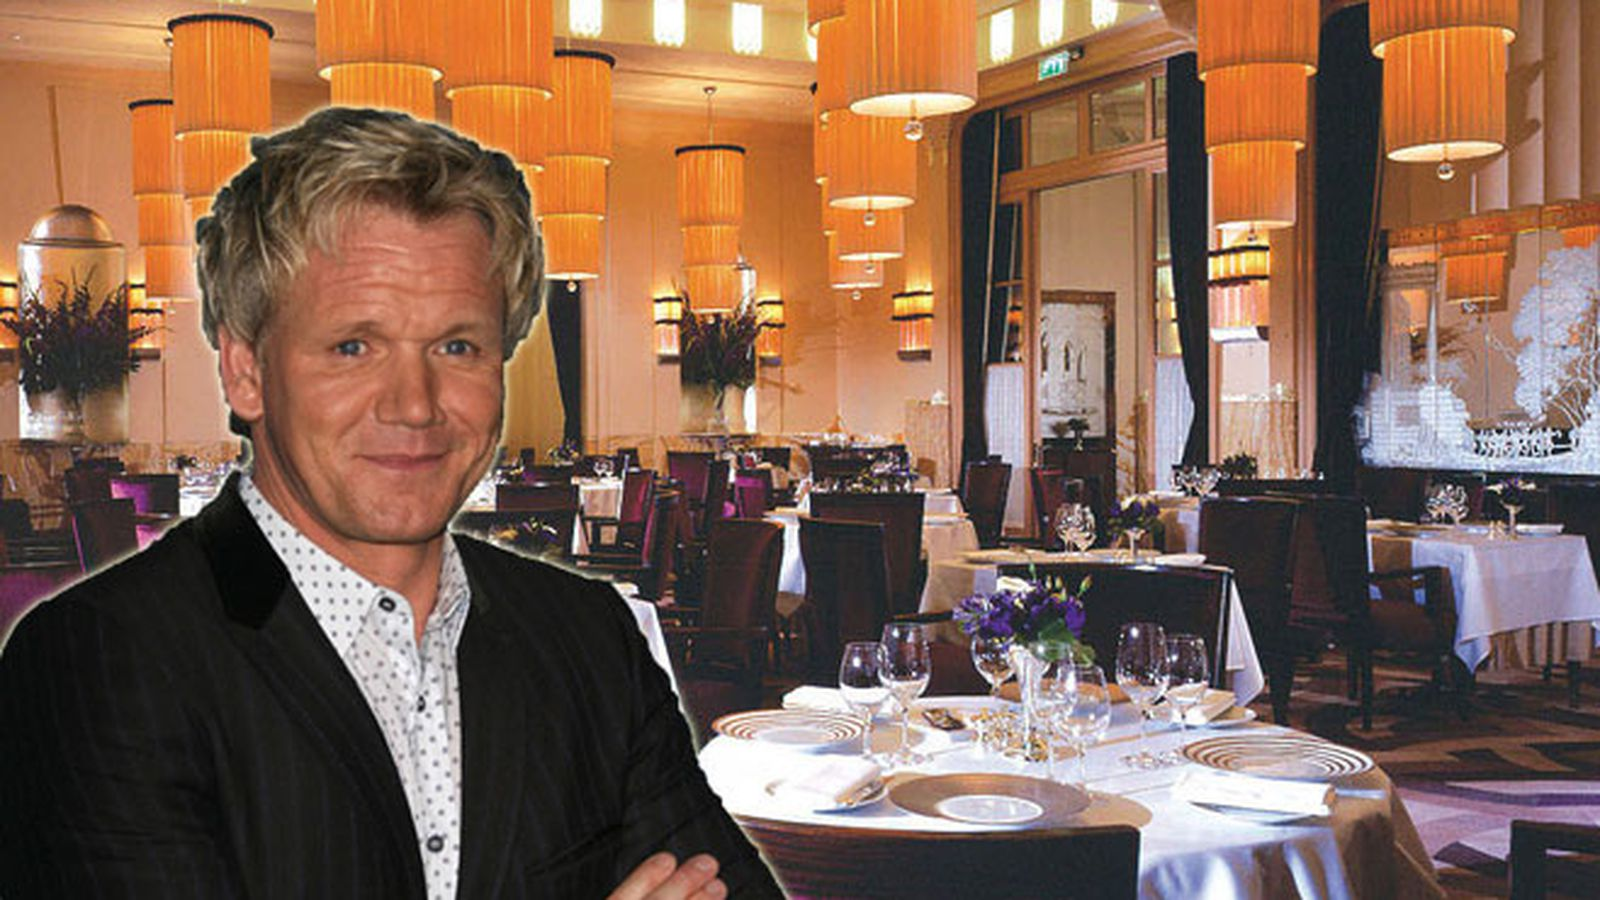 La Cocina De Gordon Ramsay Gordon Ramsay Out At Claridge's In London - Eater